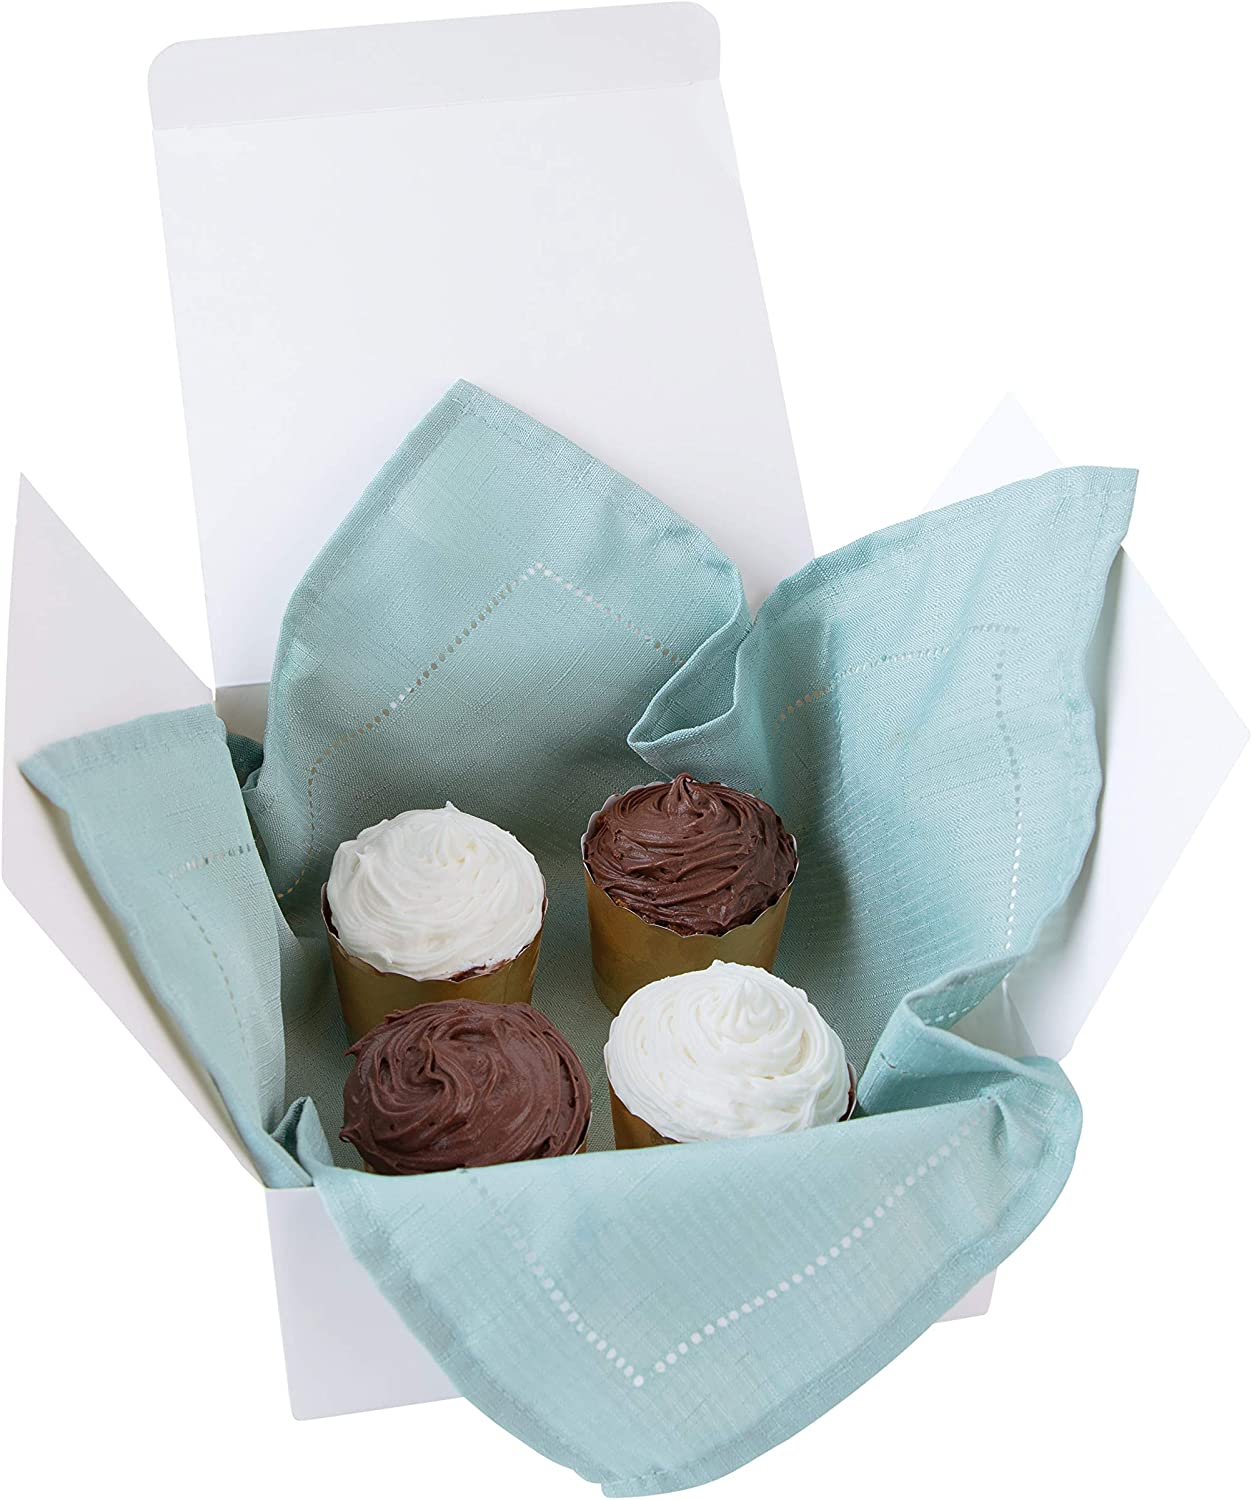 Mugs Cupcakes Cakes Cookies White Gift Boxes 8 x 8 x 4 Great For All Occasions 10 Pack Boxes for Gifts Craft box